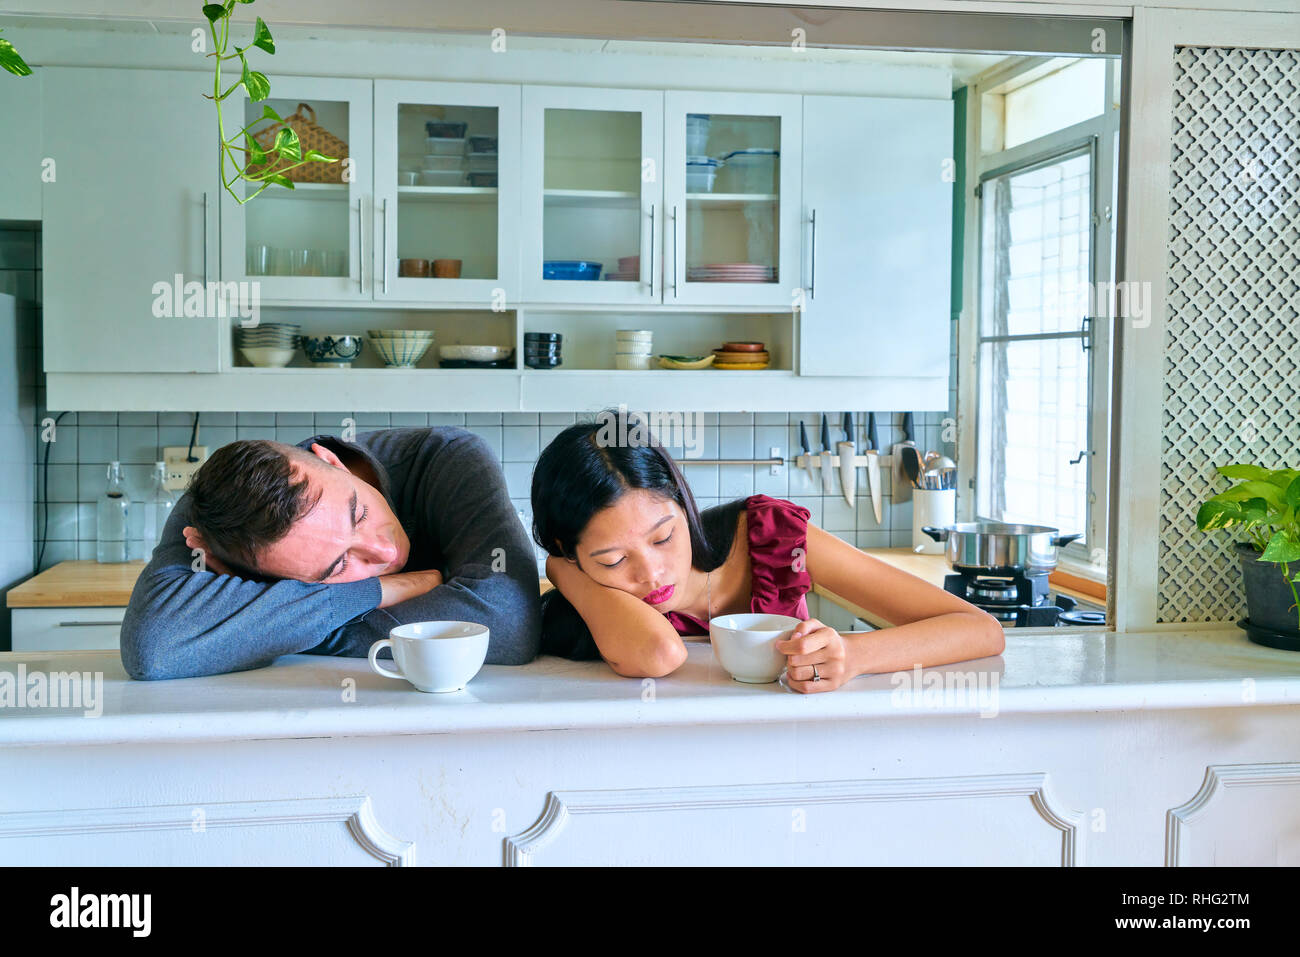 Lovely couple posing - sleeping and tired - Stock Image